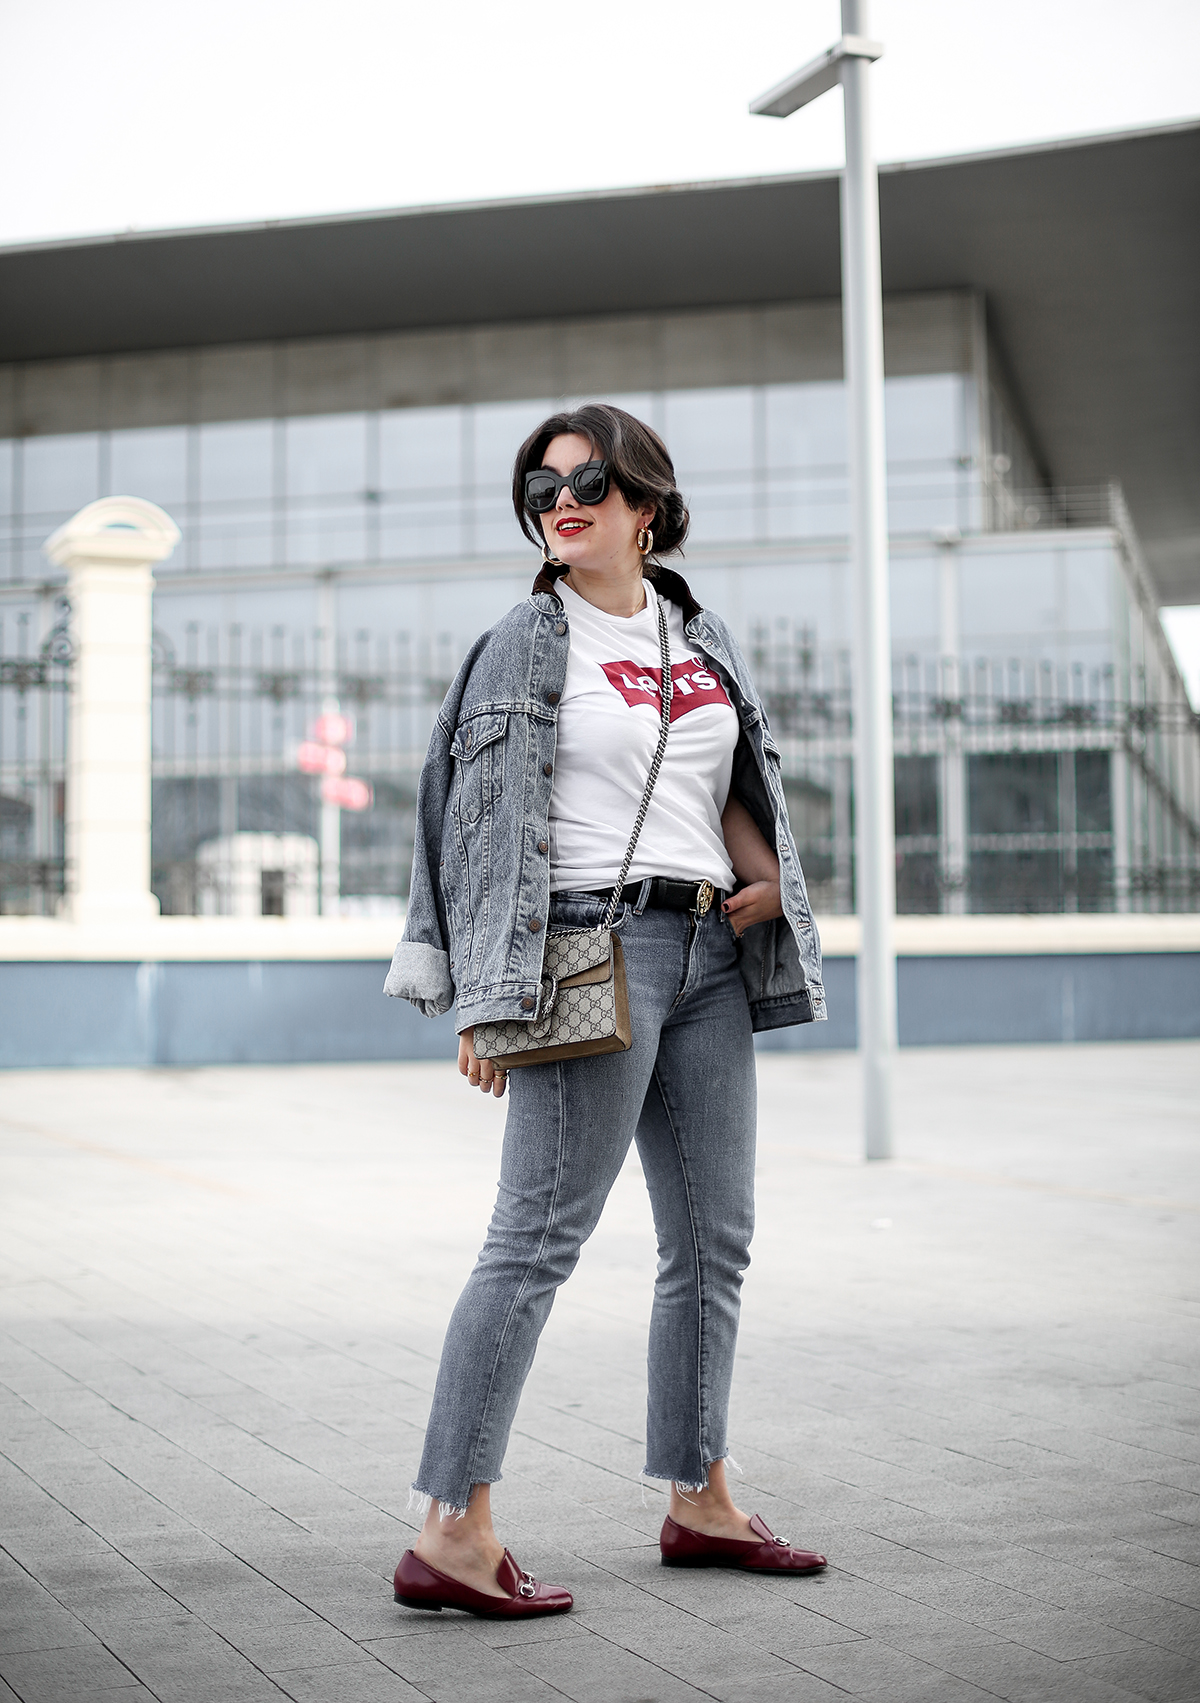 denim-total-look-levis-girl-vintage-gucci-horsebit-shoes-dionysus-bag6